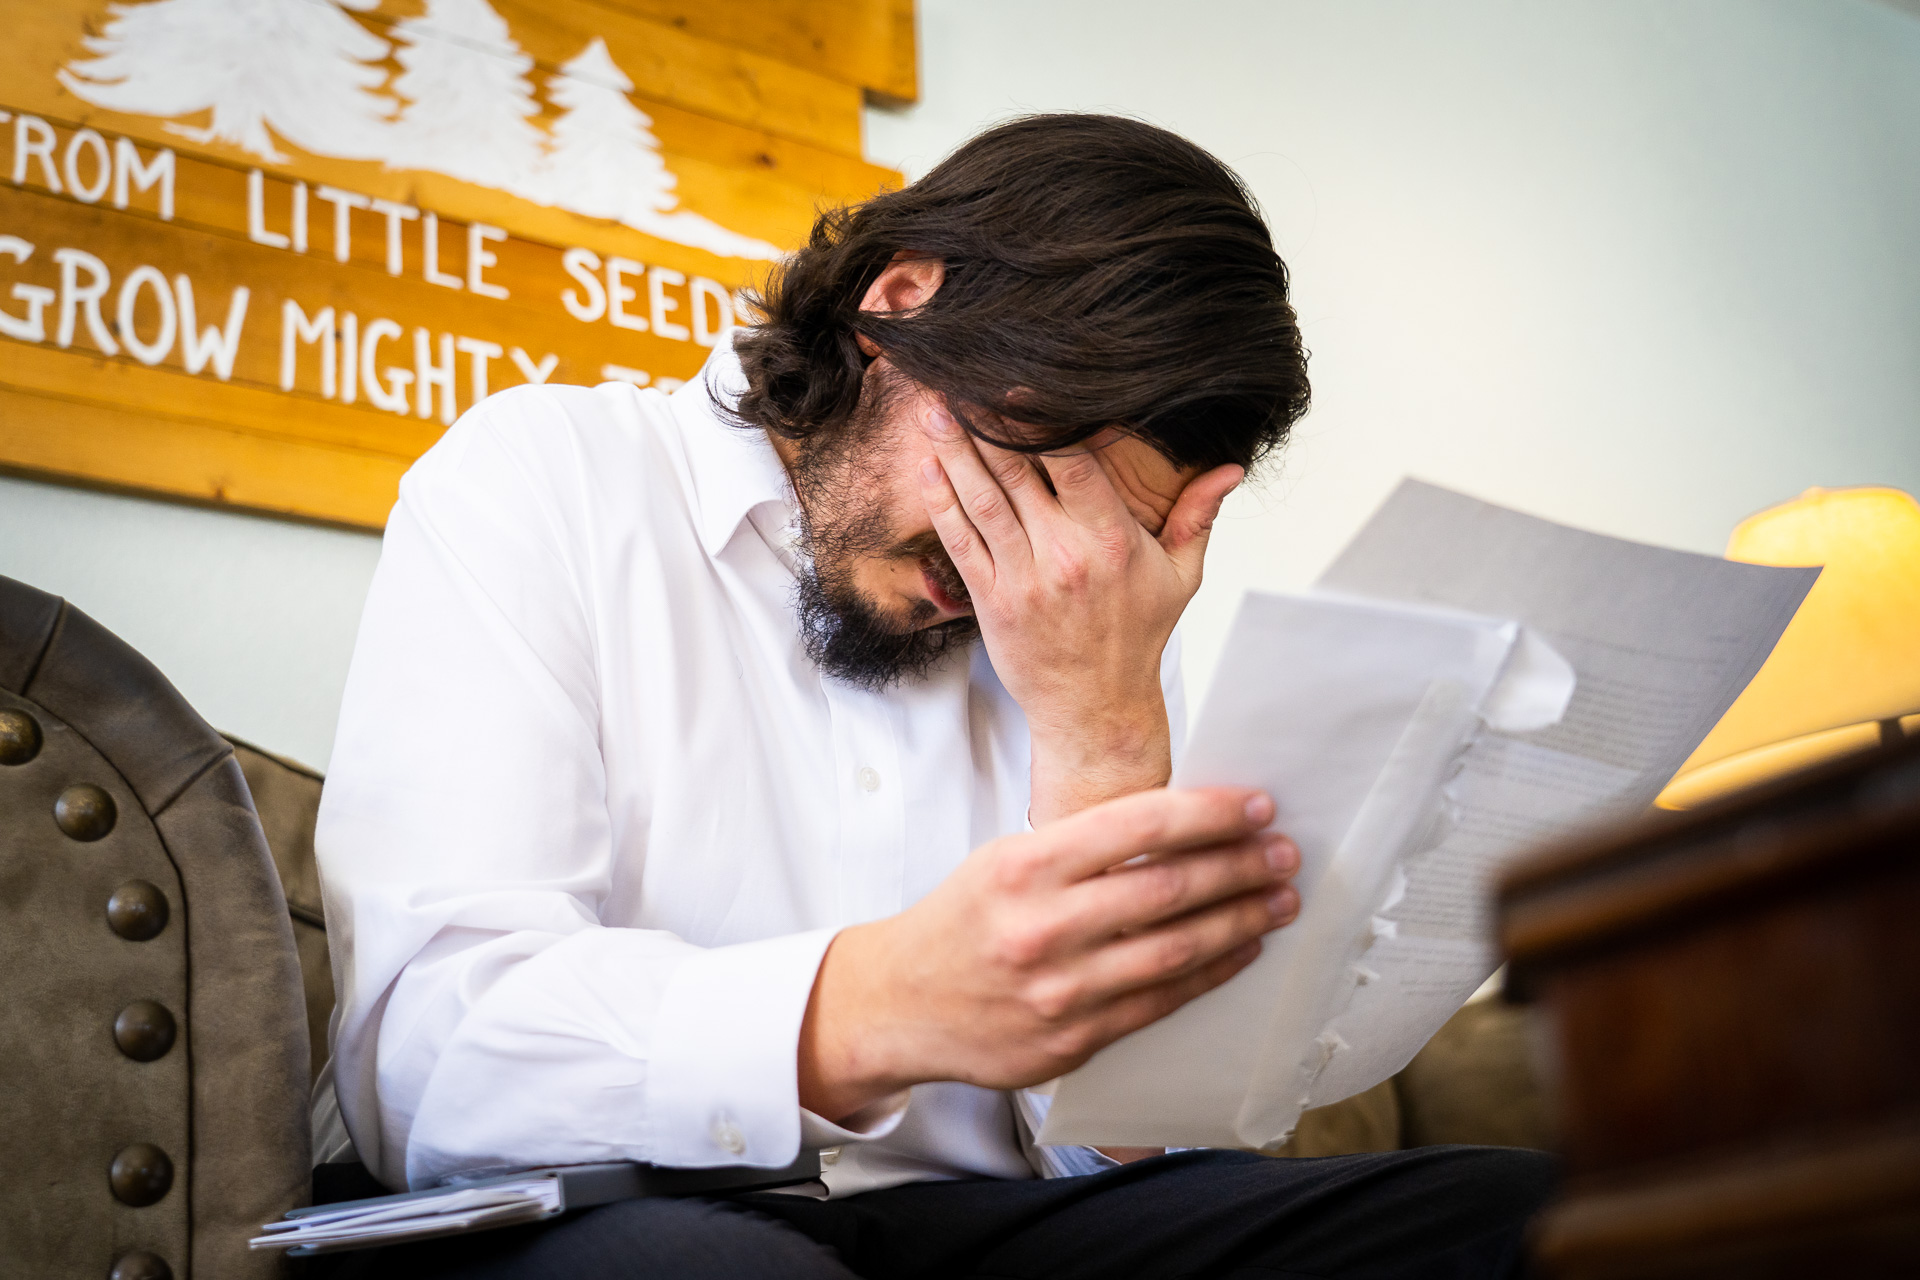 San Juan National Forest - Southwest Colorado Wedding Image | The groom wipes away tears as he reads letters